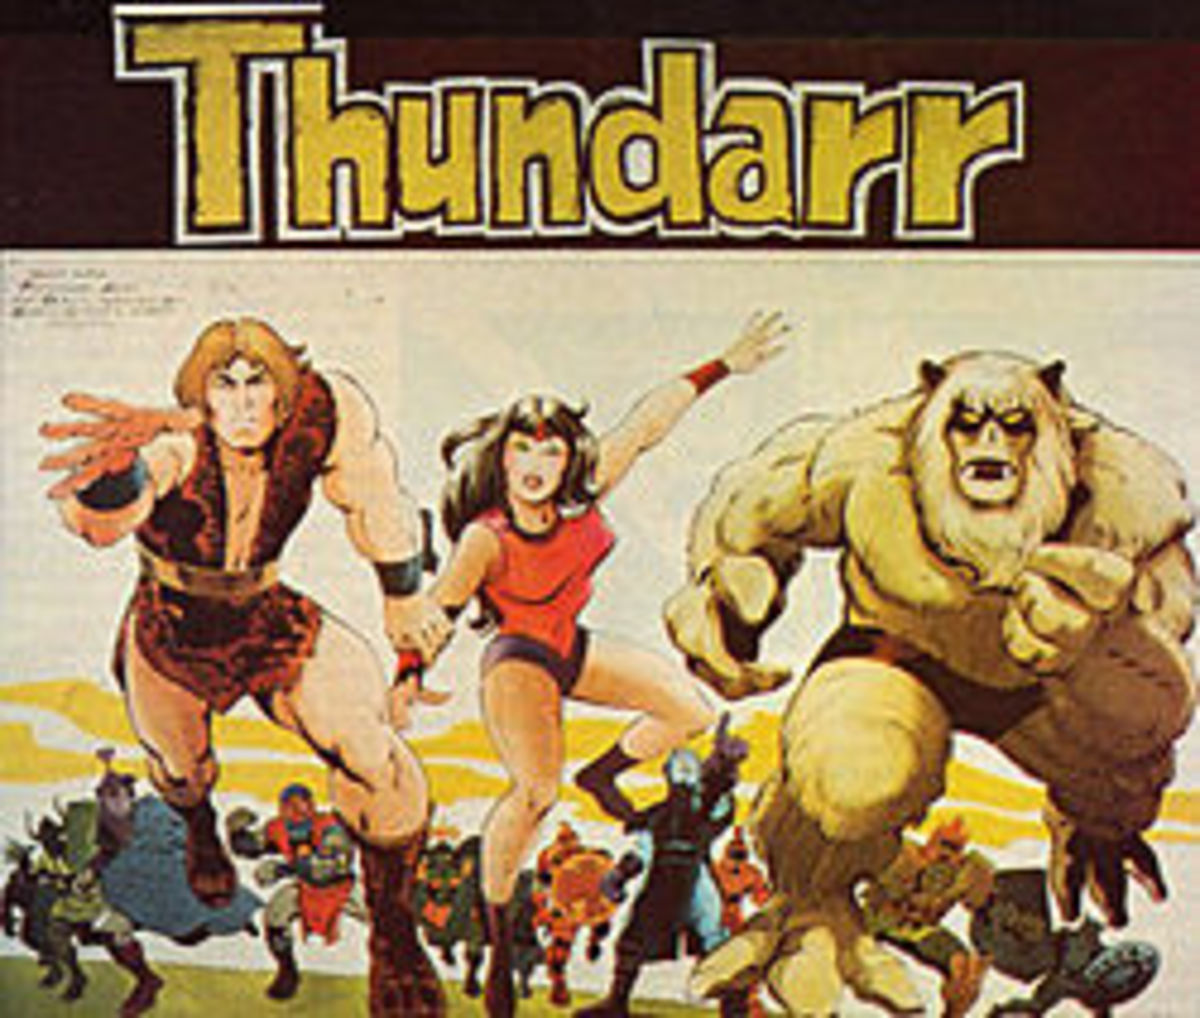 Geektoons: Thundarr the Barbarian